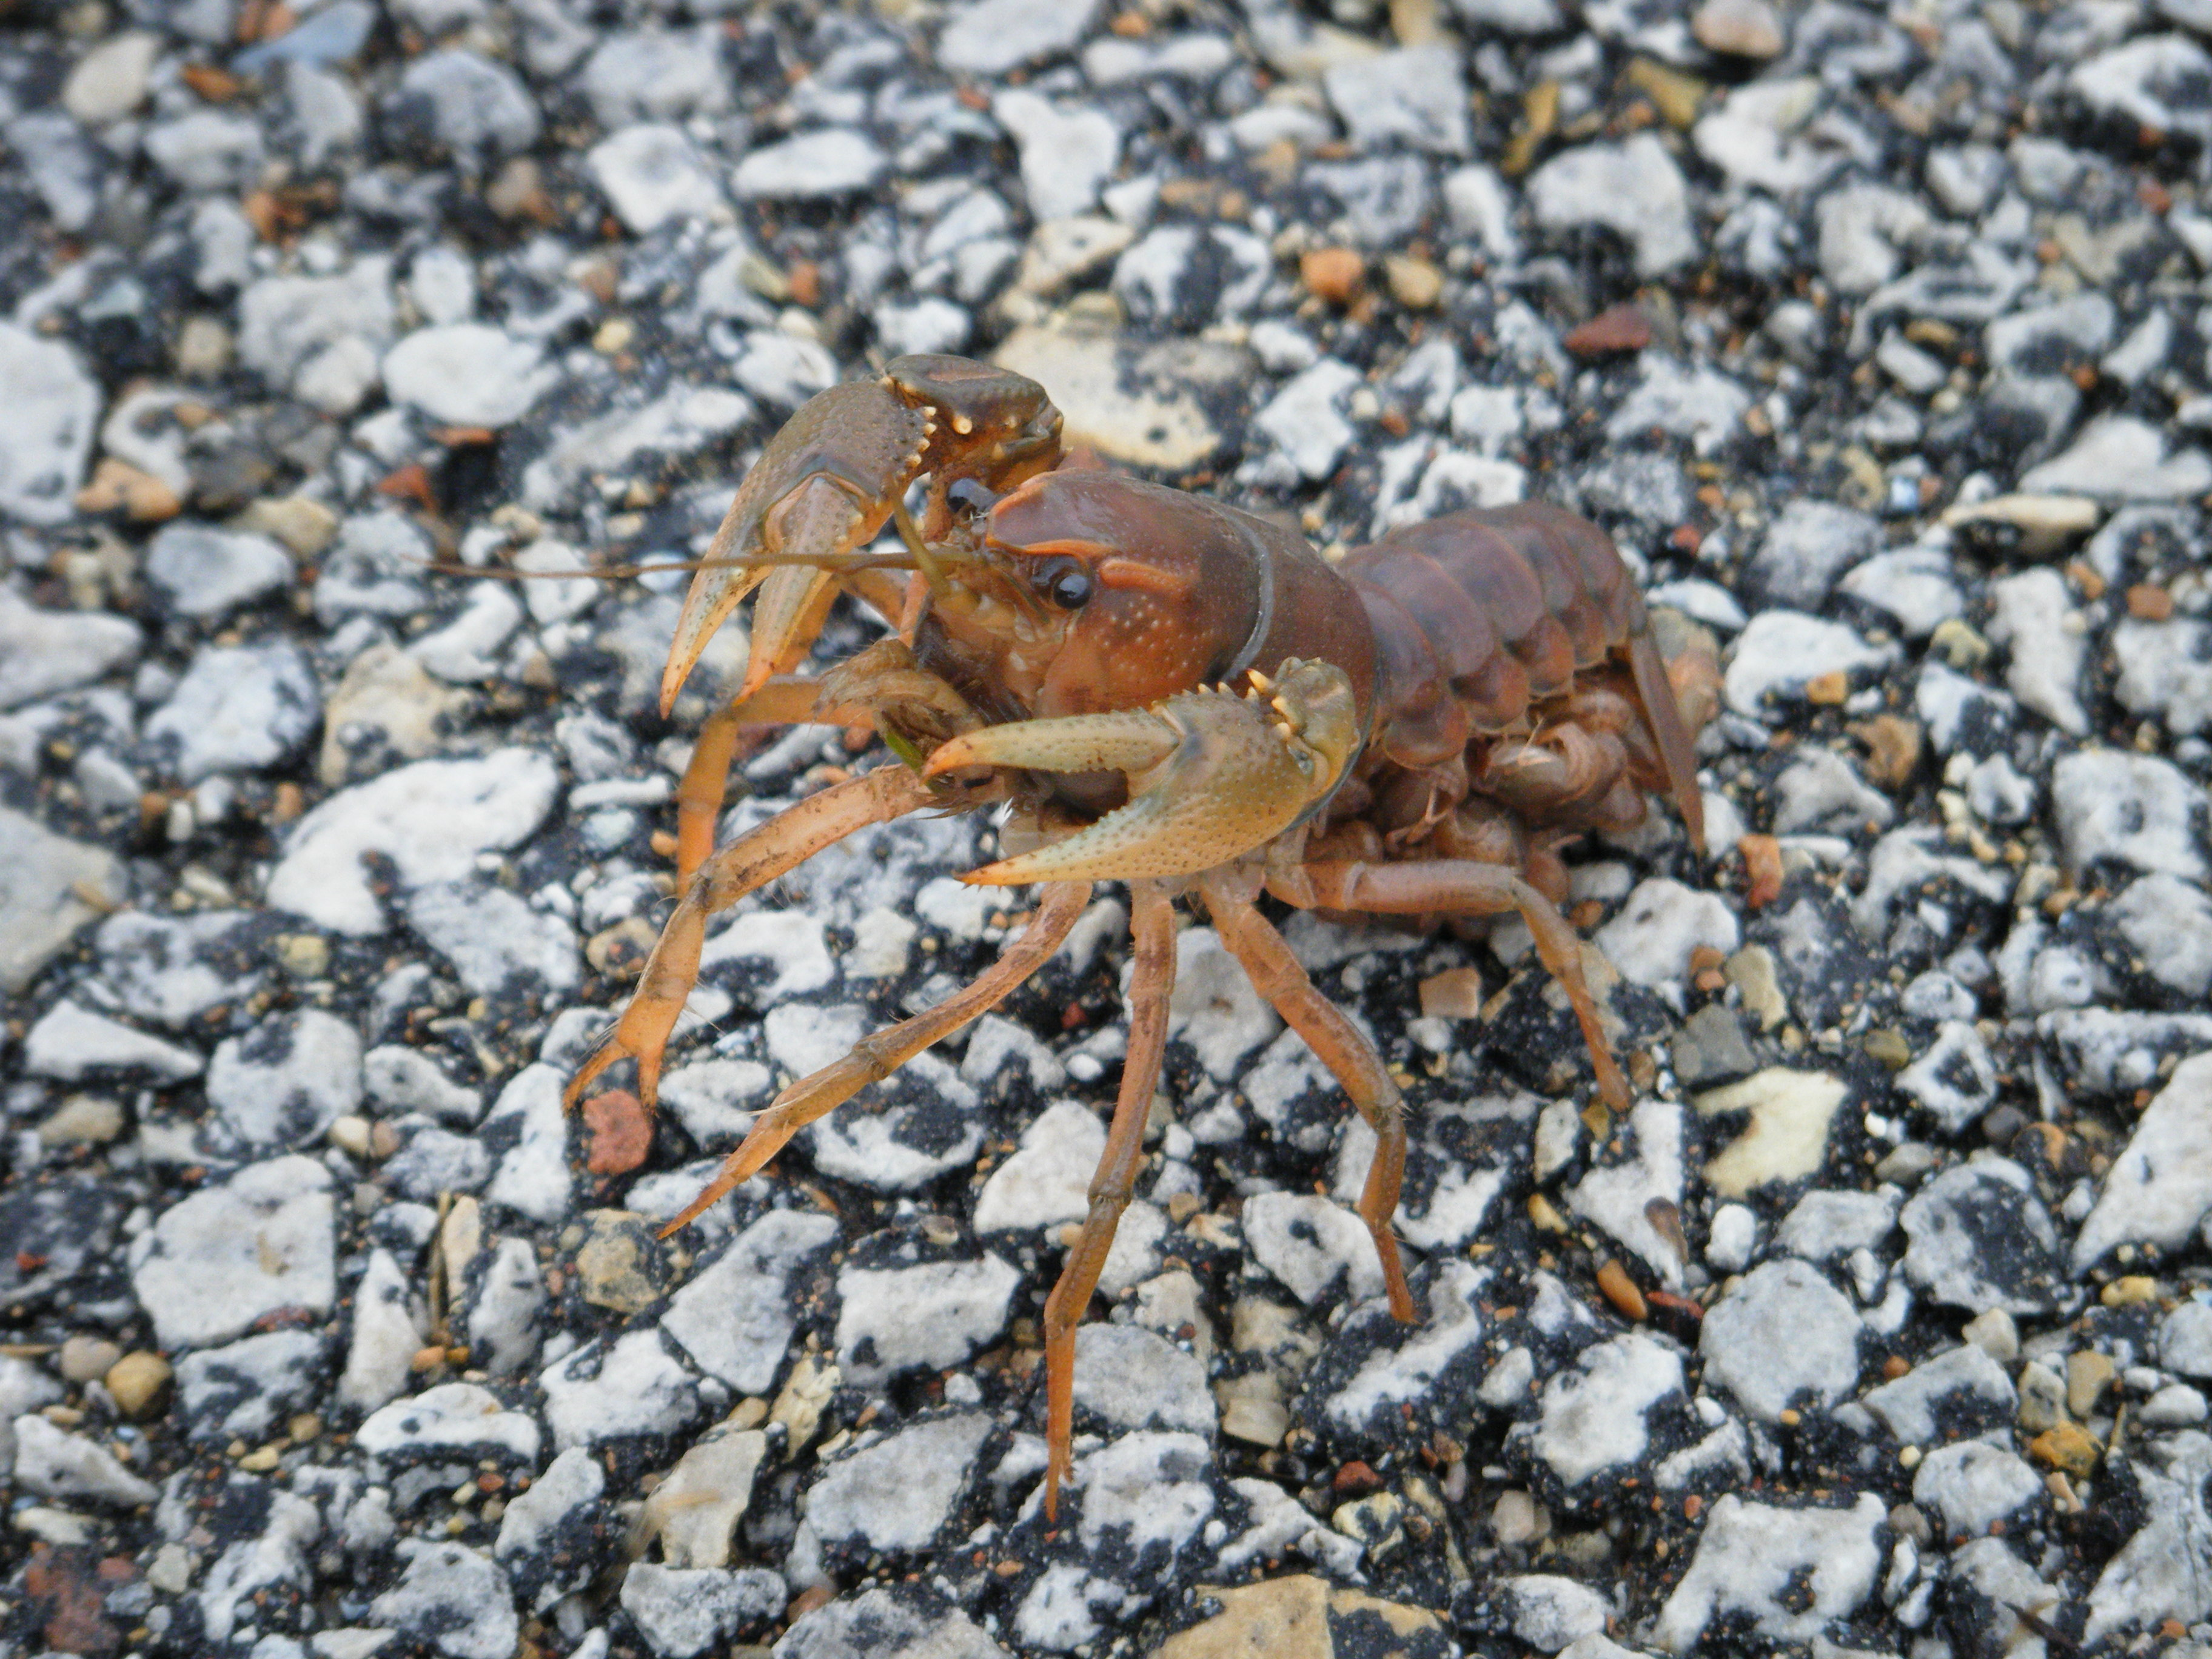 This sweet little creature, which is carrying a load of just-hatched babies underneath its tail, was spotted on the bike path last week. Photo: Robin Bjorkquist, Cornell University